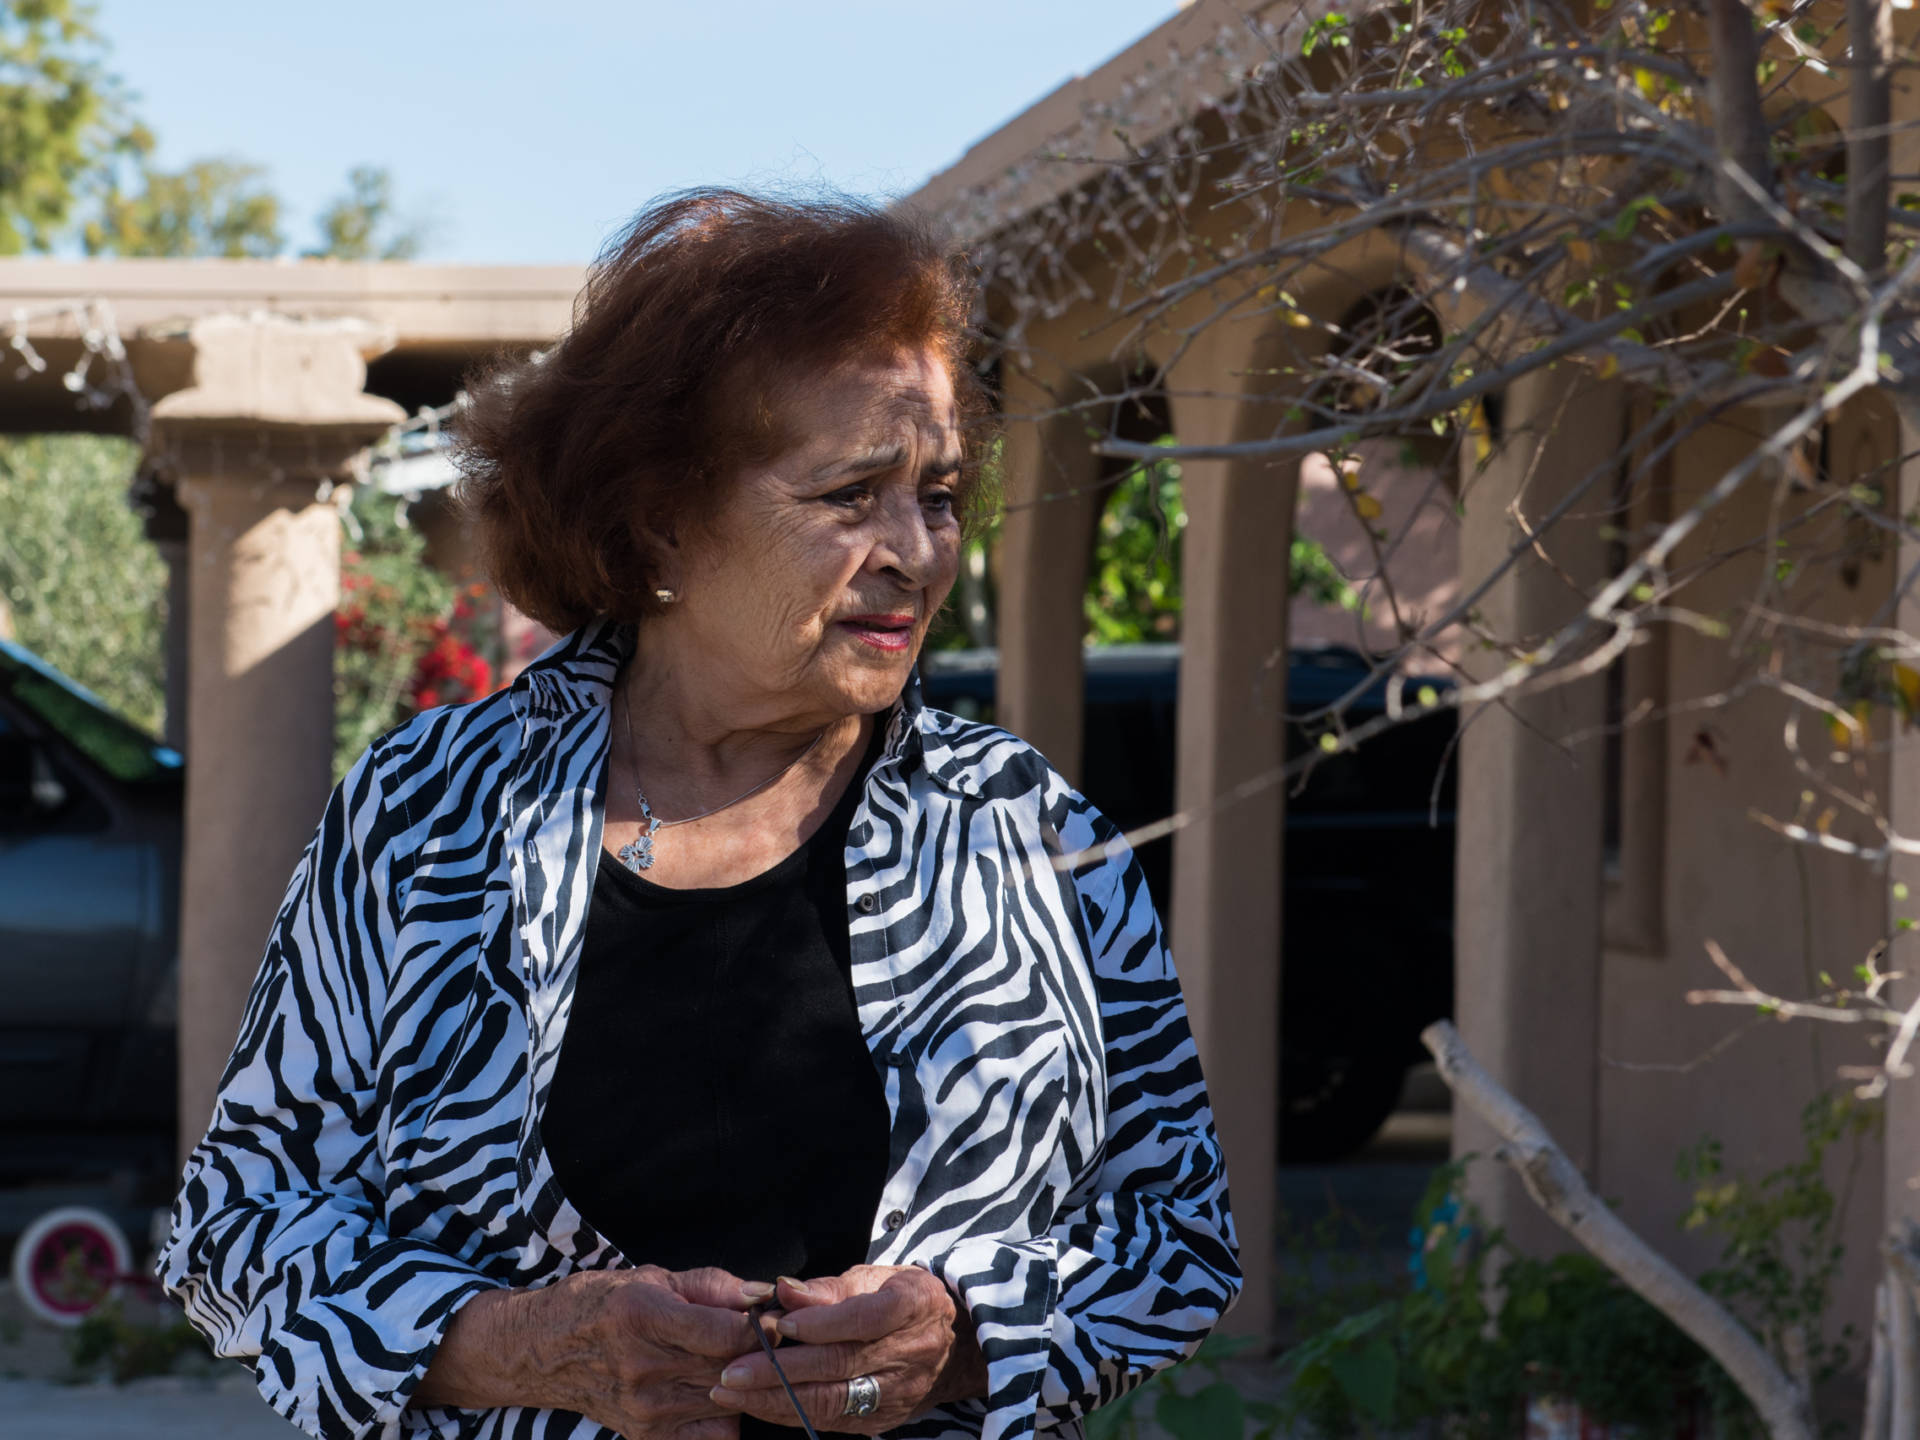 Ramona Morales, 80, was one of many residents facing large fees for a minor code violation. Jessica Chou/NPR